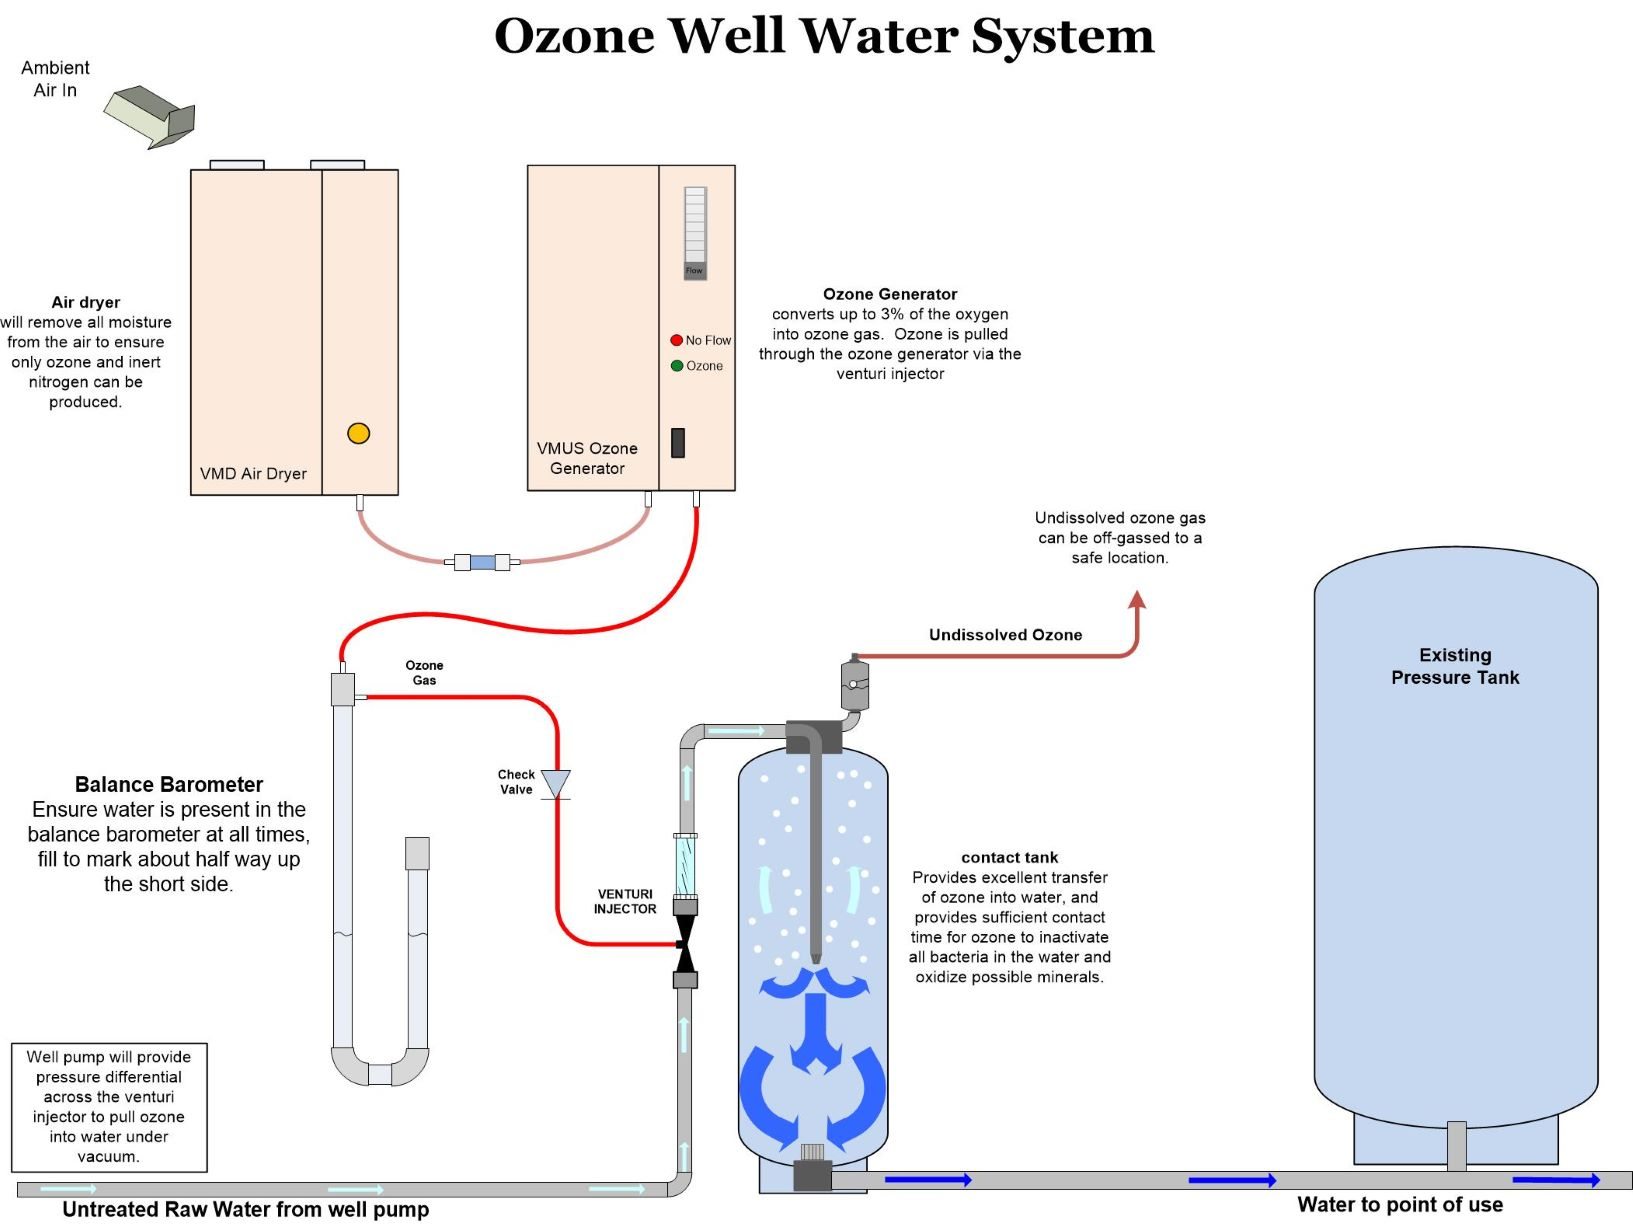 hight resolution of  the existing water flow to pull ozone into the water stream a small mixing tank would increase contact time for disinfection before use in the home